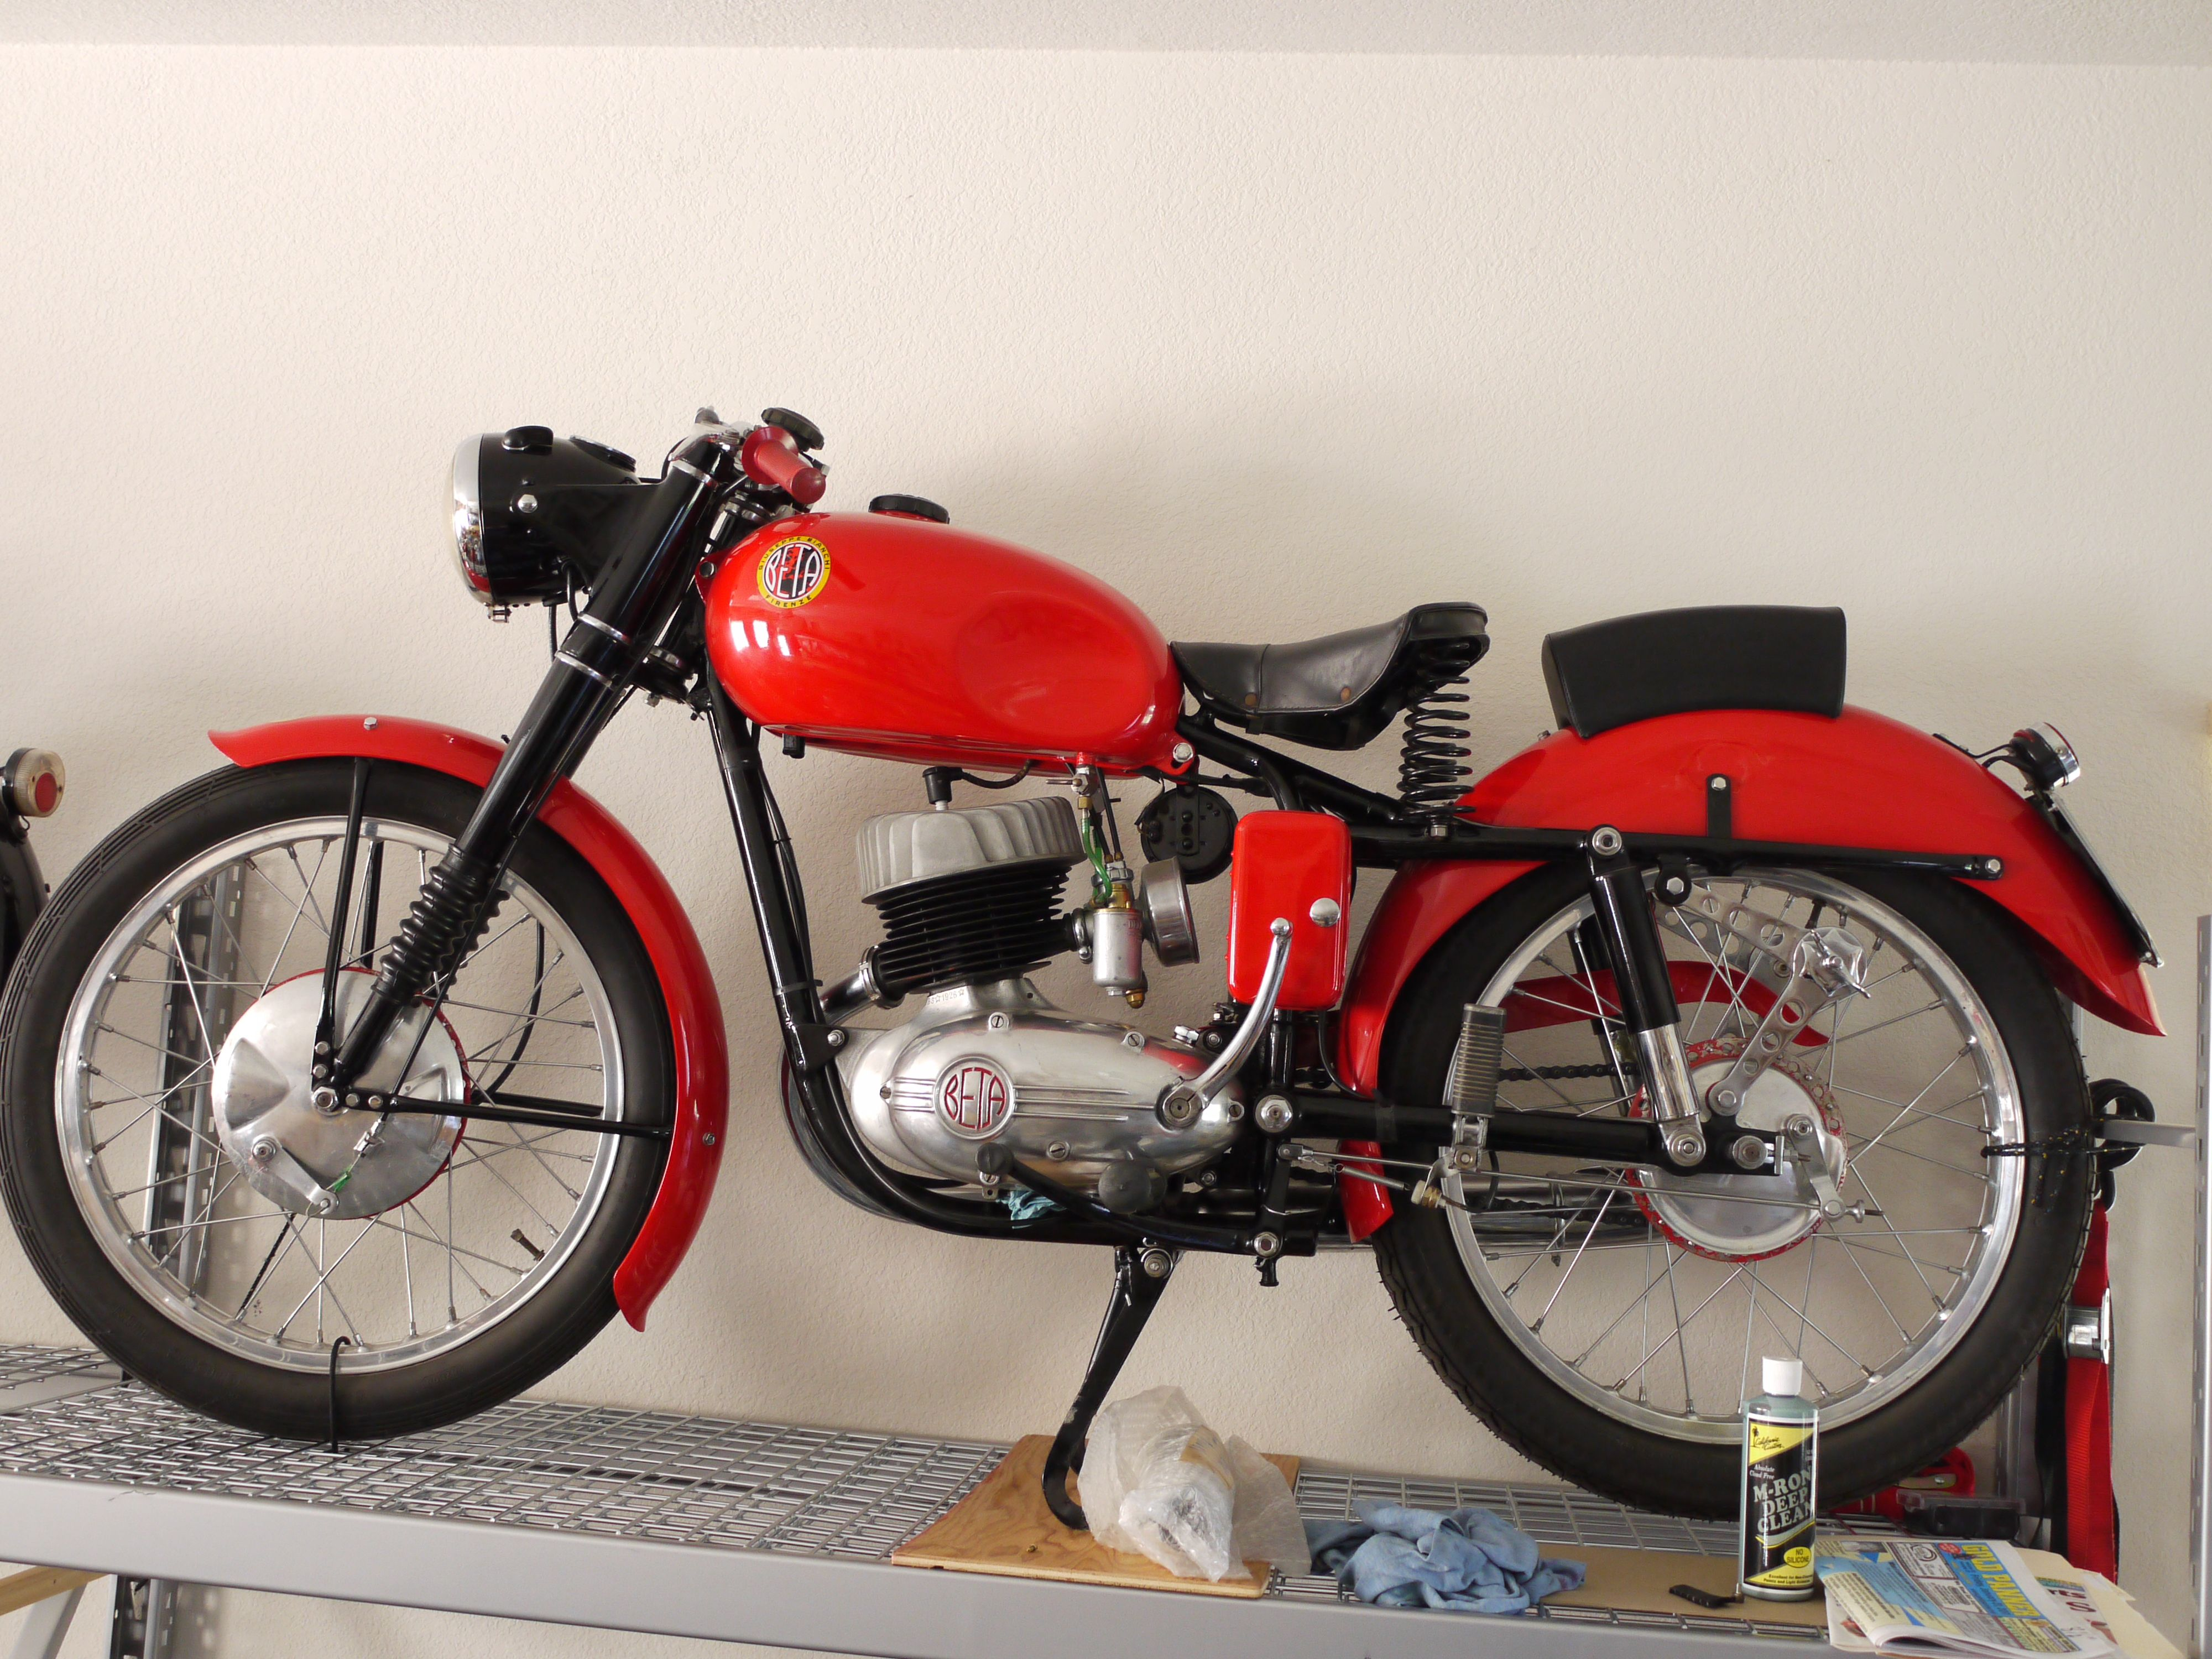 1955 Beta Vulcano sports 160 Motorcycle manufacturers